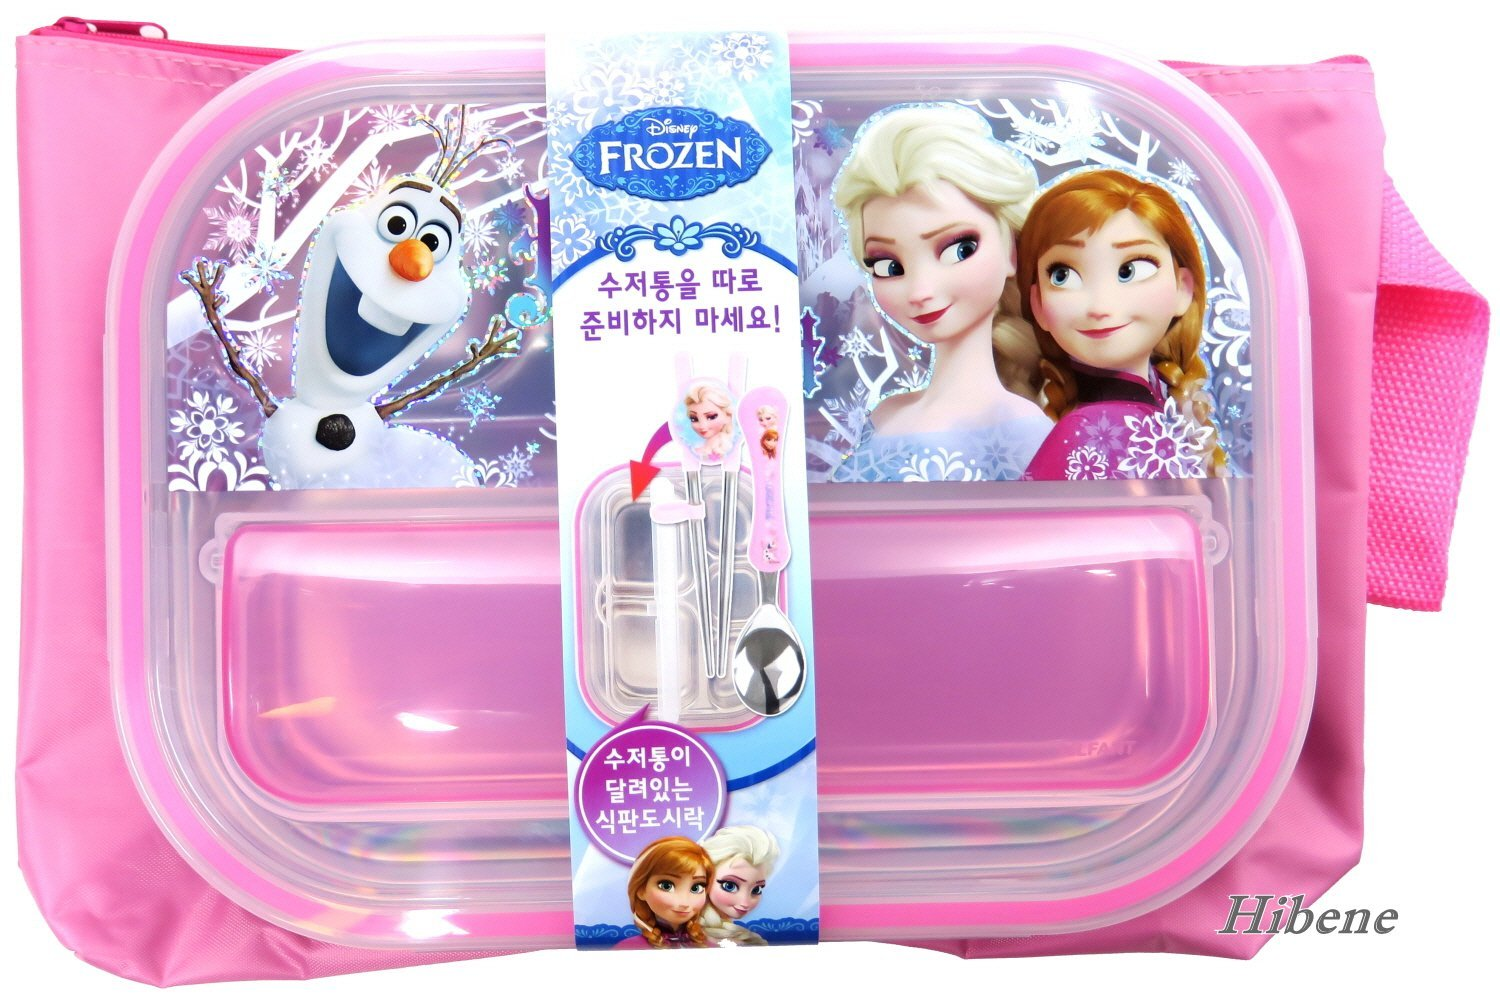 Disney Frozen Stainless Steel Kids School, Camping Food Tray Lunch Box by Lilfant   B01H0J7KM4